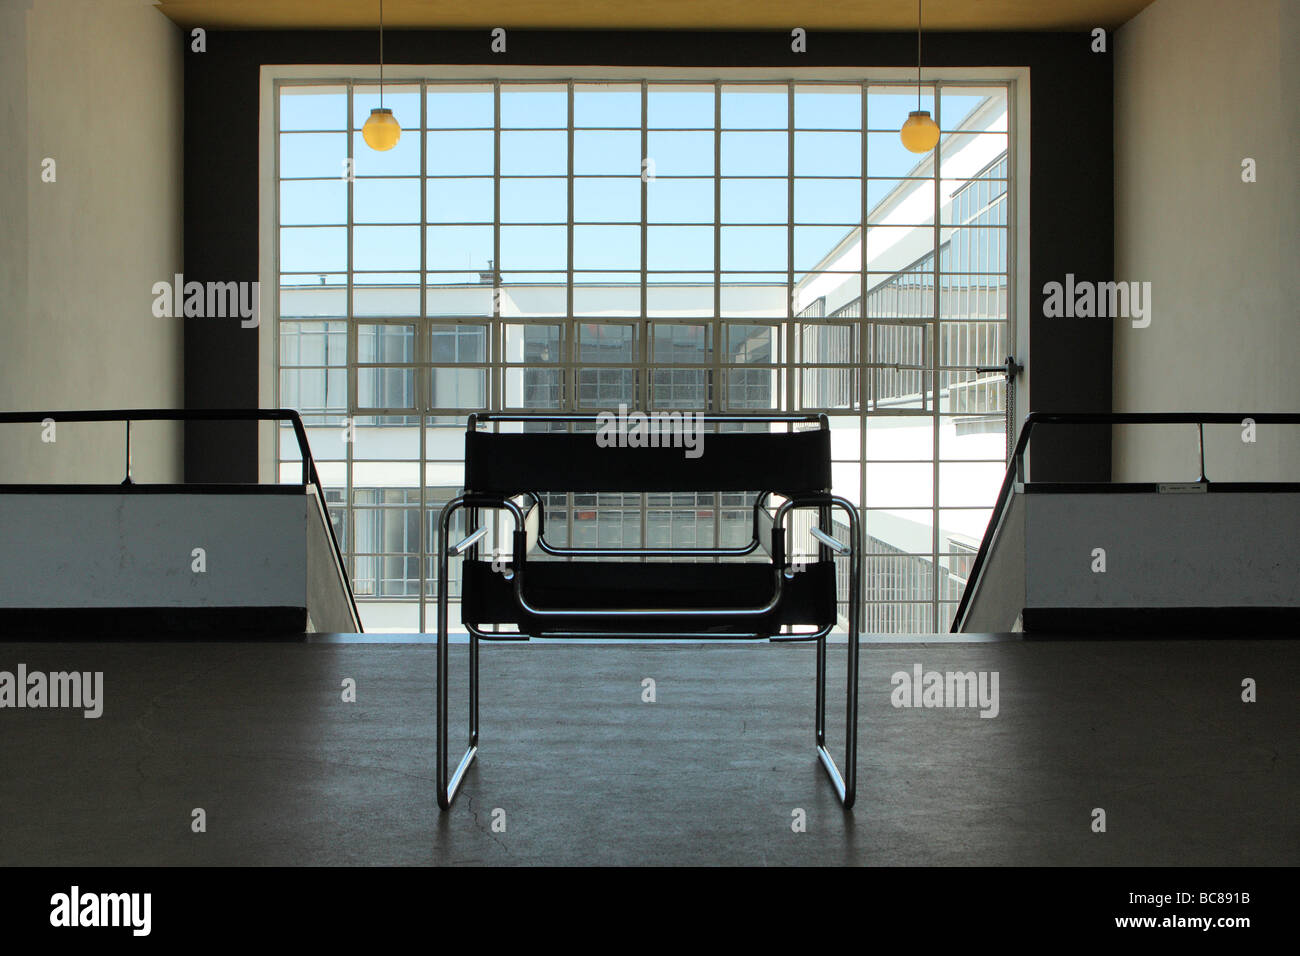 Bauhaus design interior exterior dessau germany - Stock Image